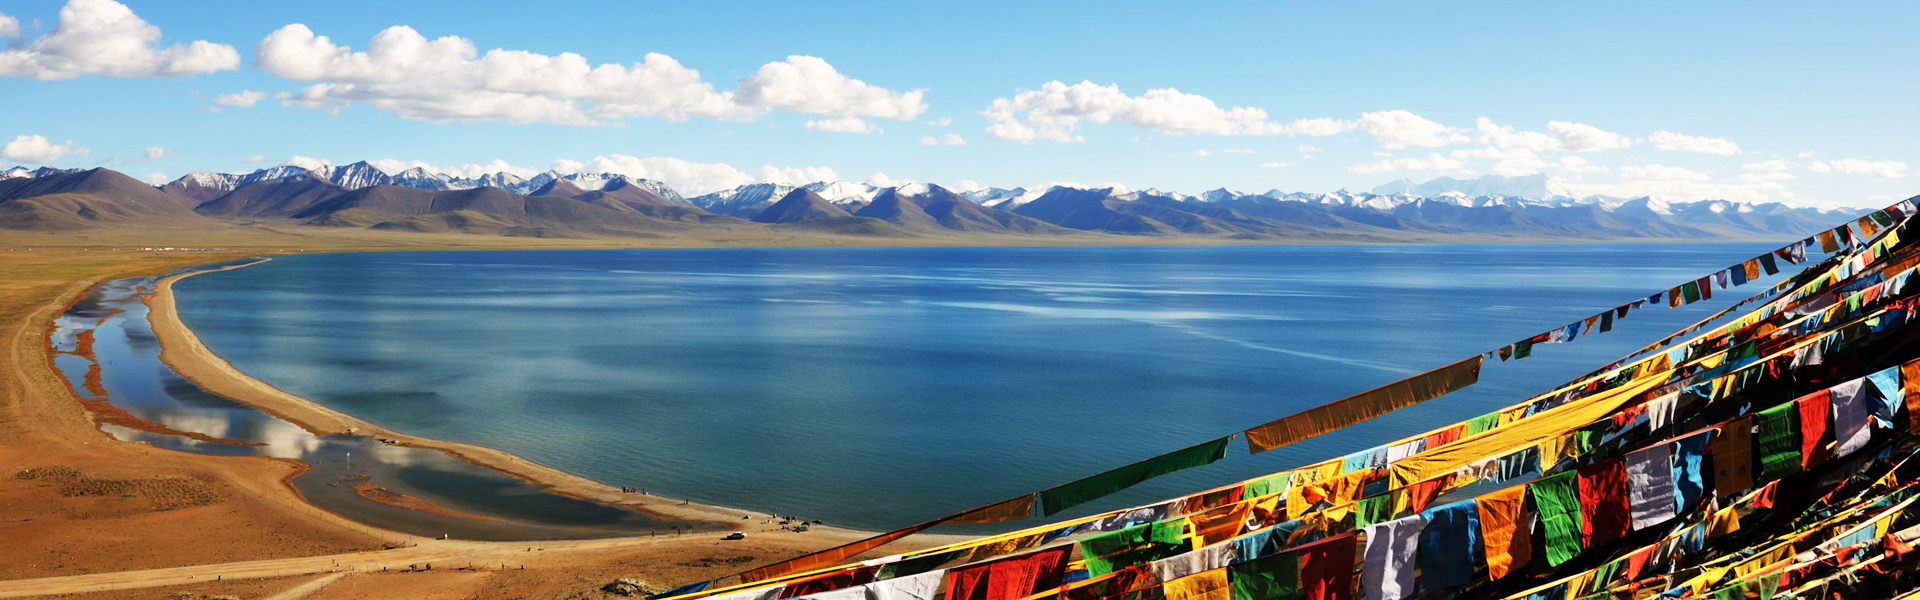 Namtso Lake Tibet Highlights Introduction Facts And